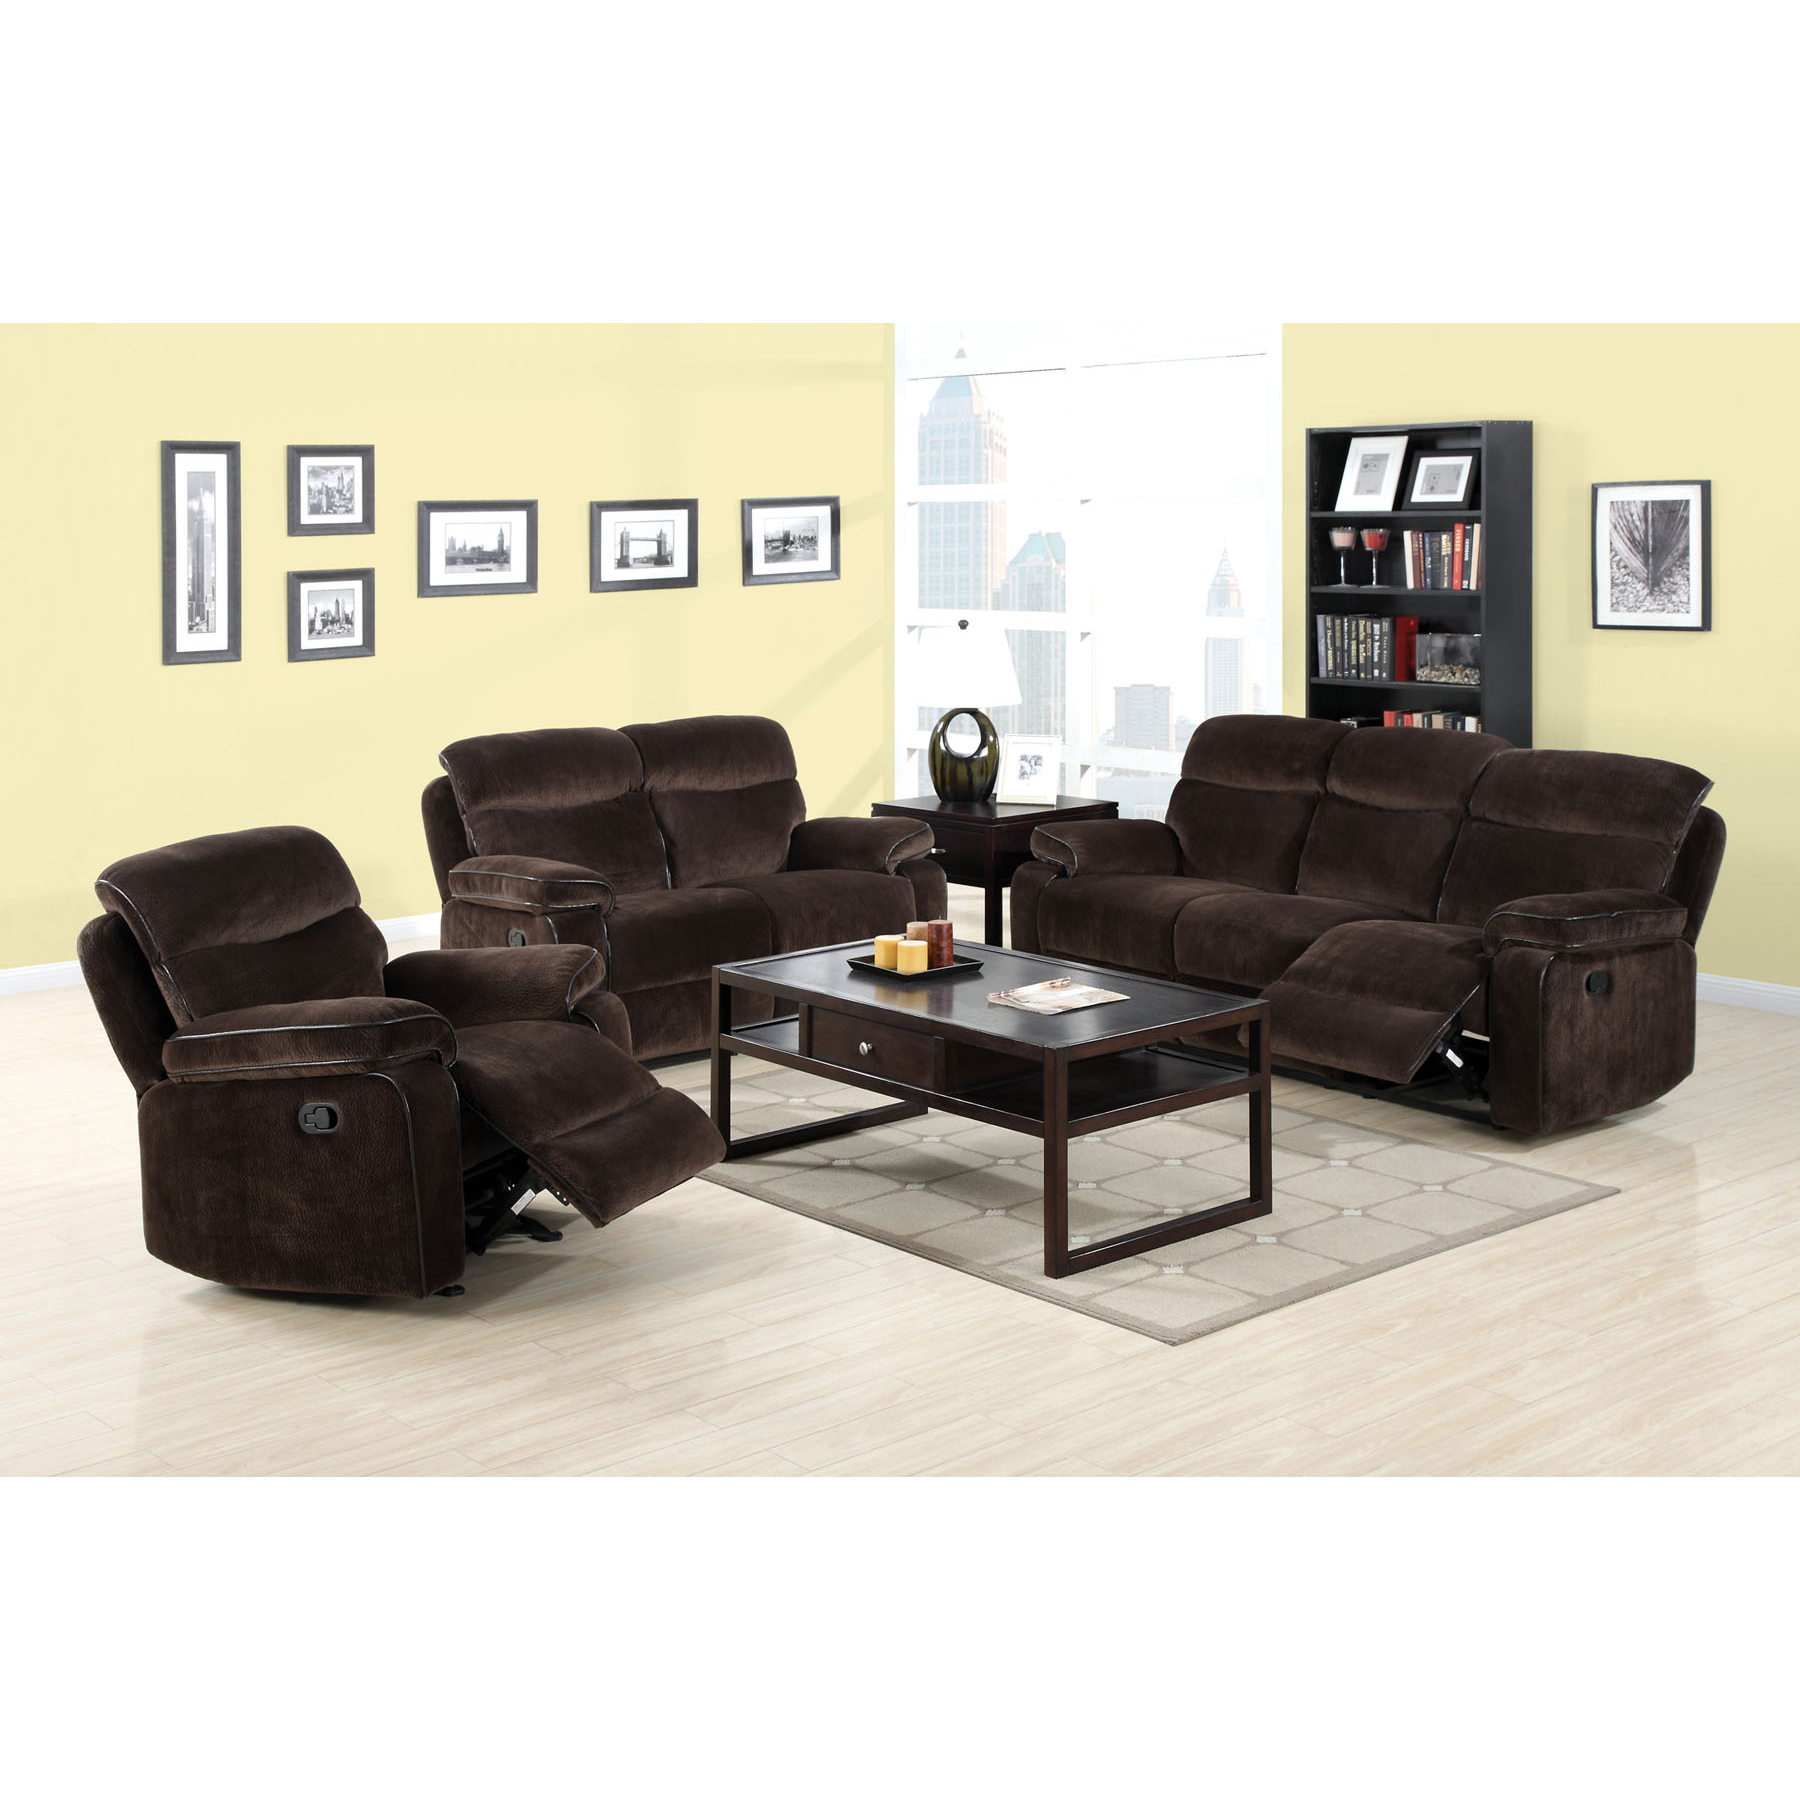 Venetian Worldwide Worcester Champion Fabric Recliner Sofa